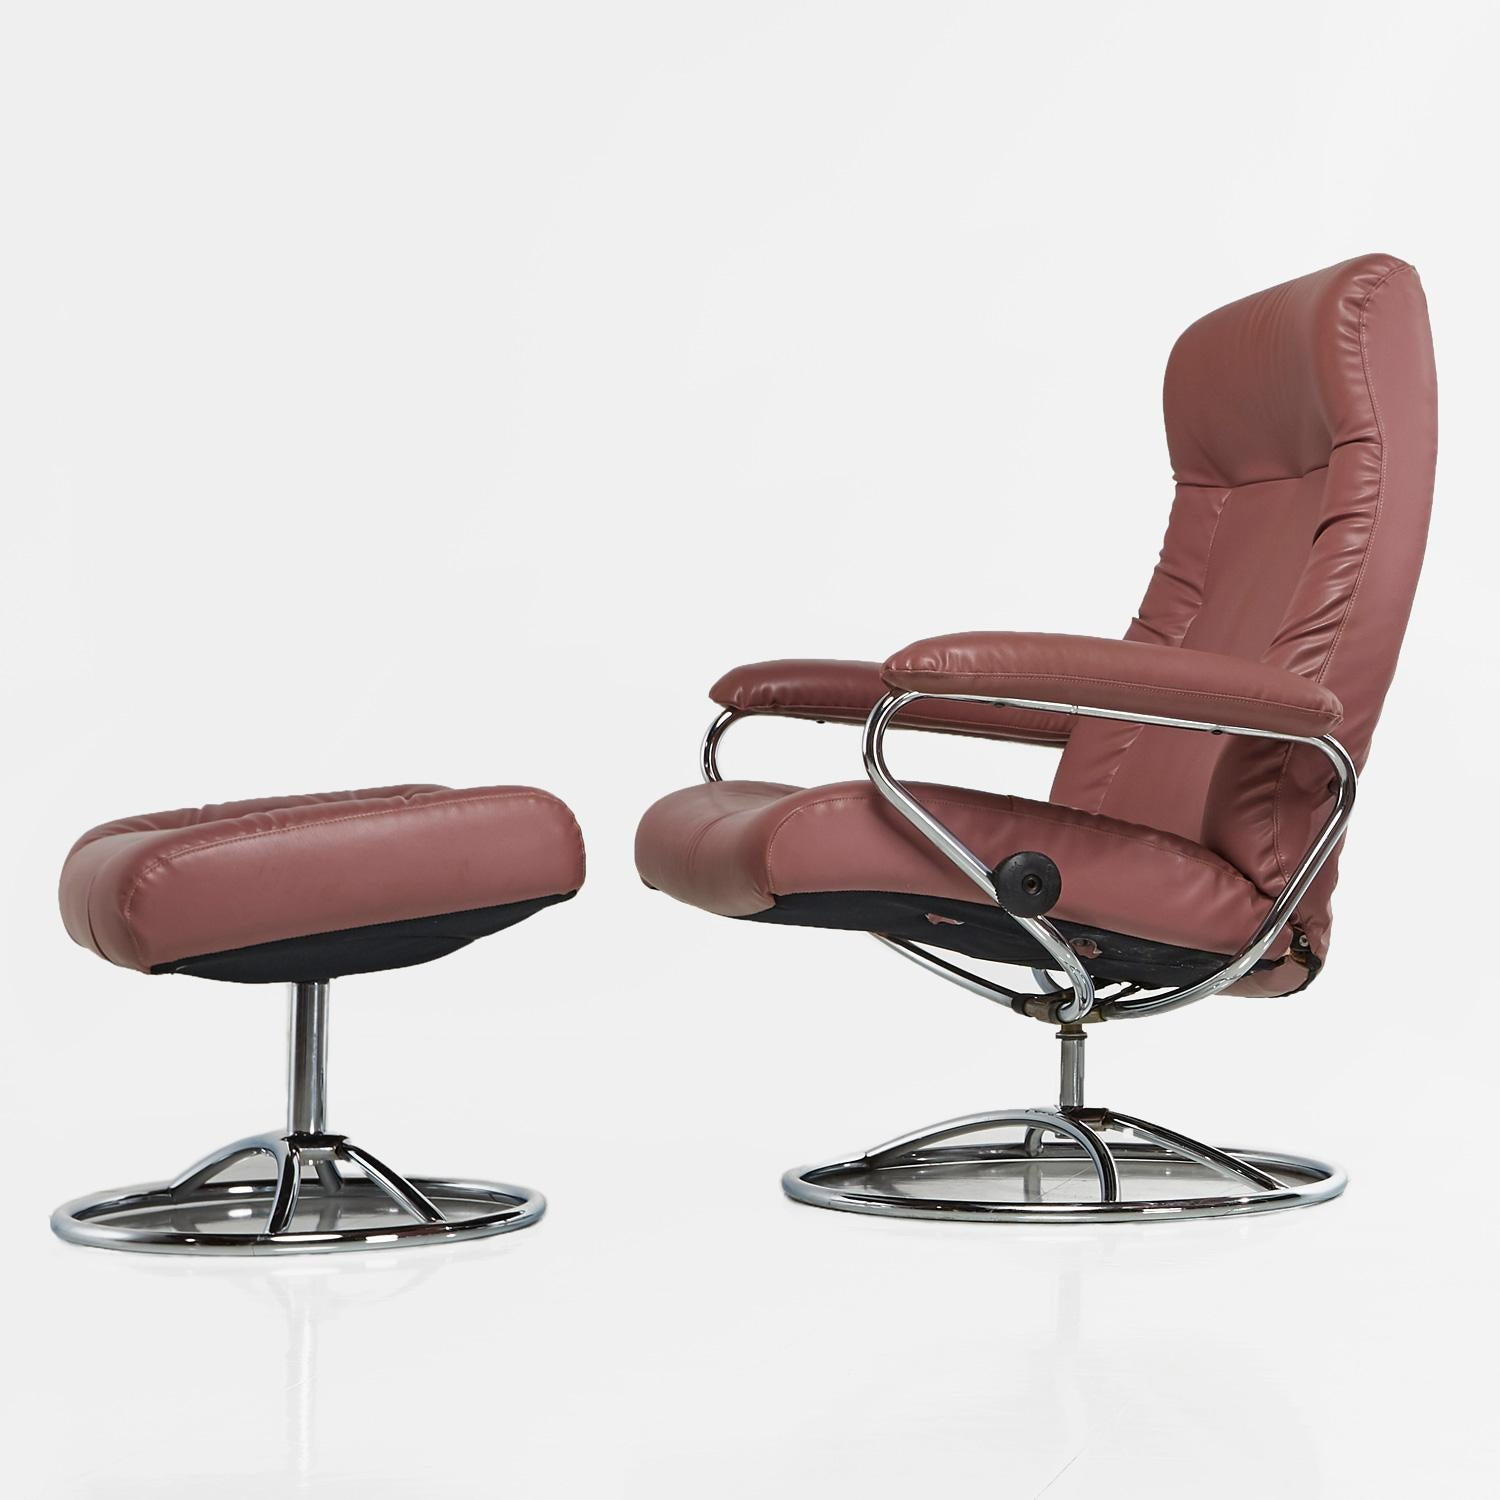 J E Ekornes Stressless Recliner Swivel Rose Leather Lounge Chairs And Ottoman At 1stdibs